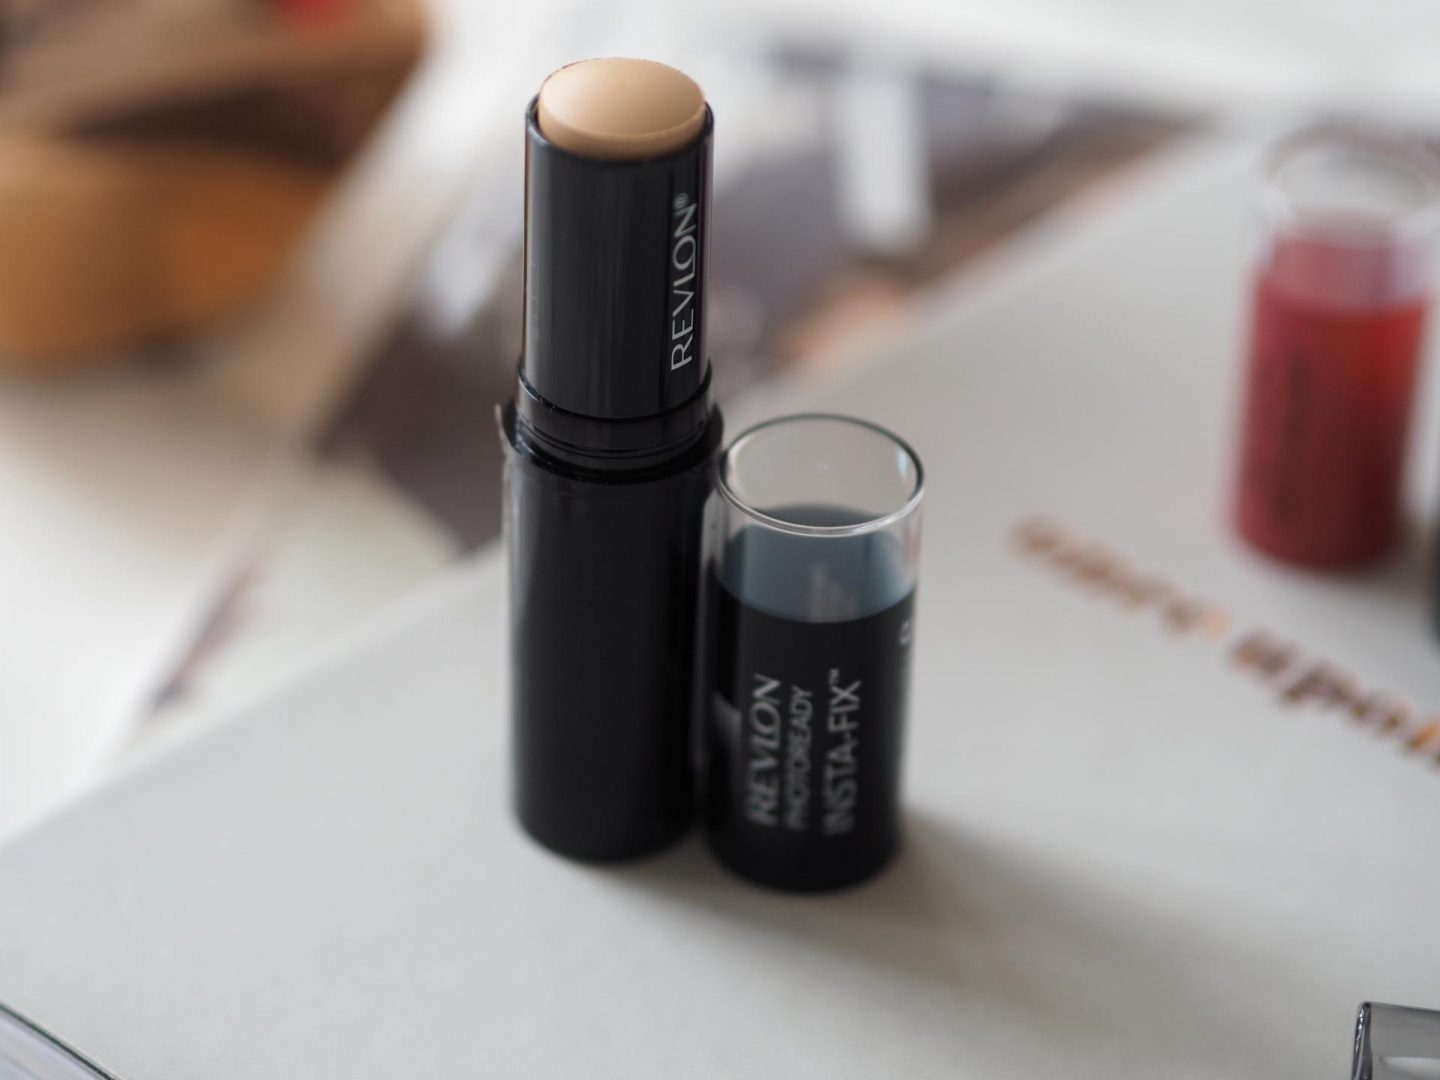 Revlon PhotoReady Insta-fix